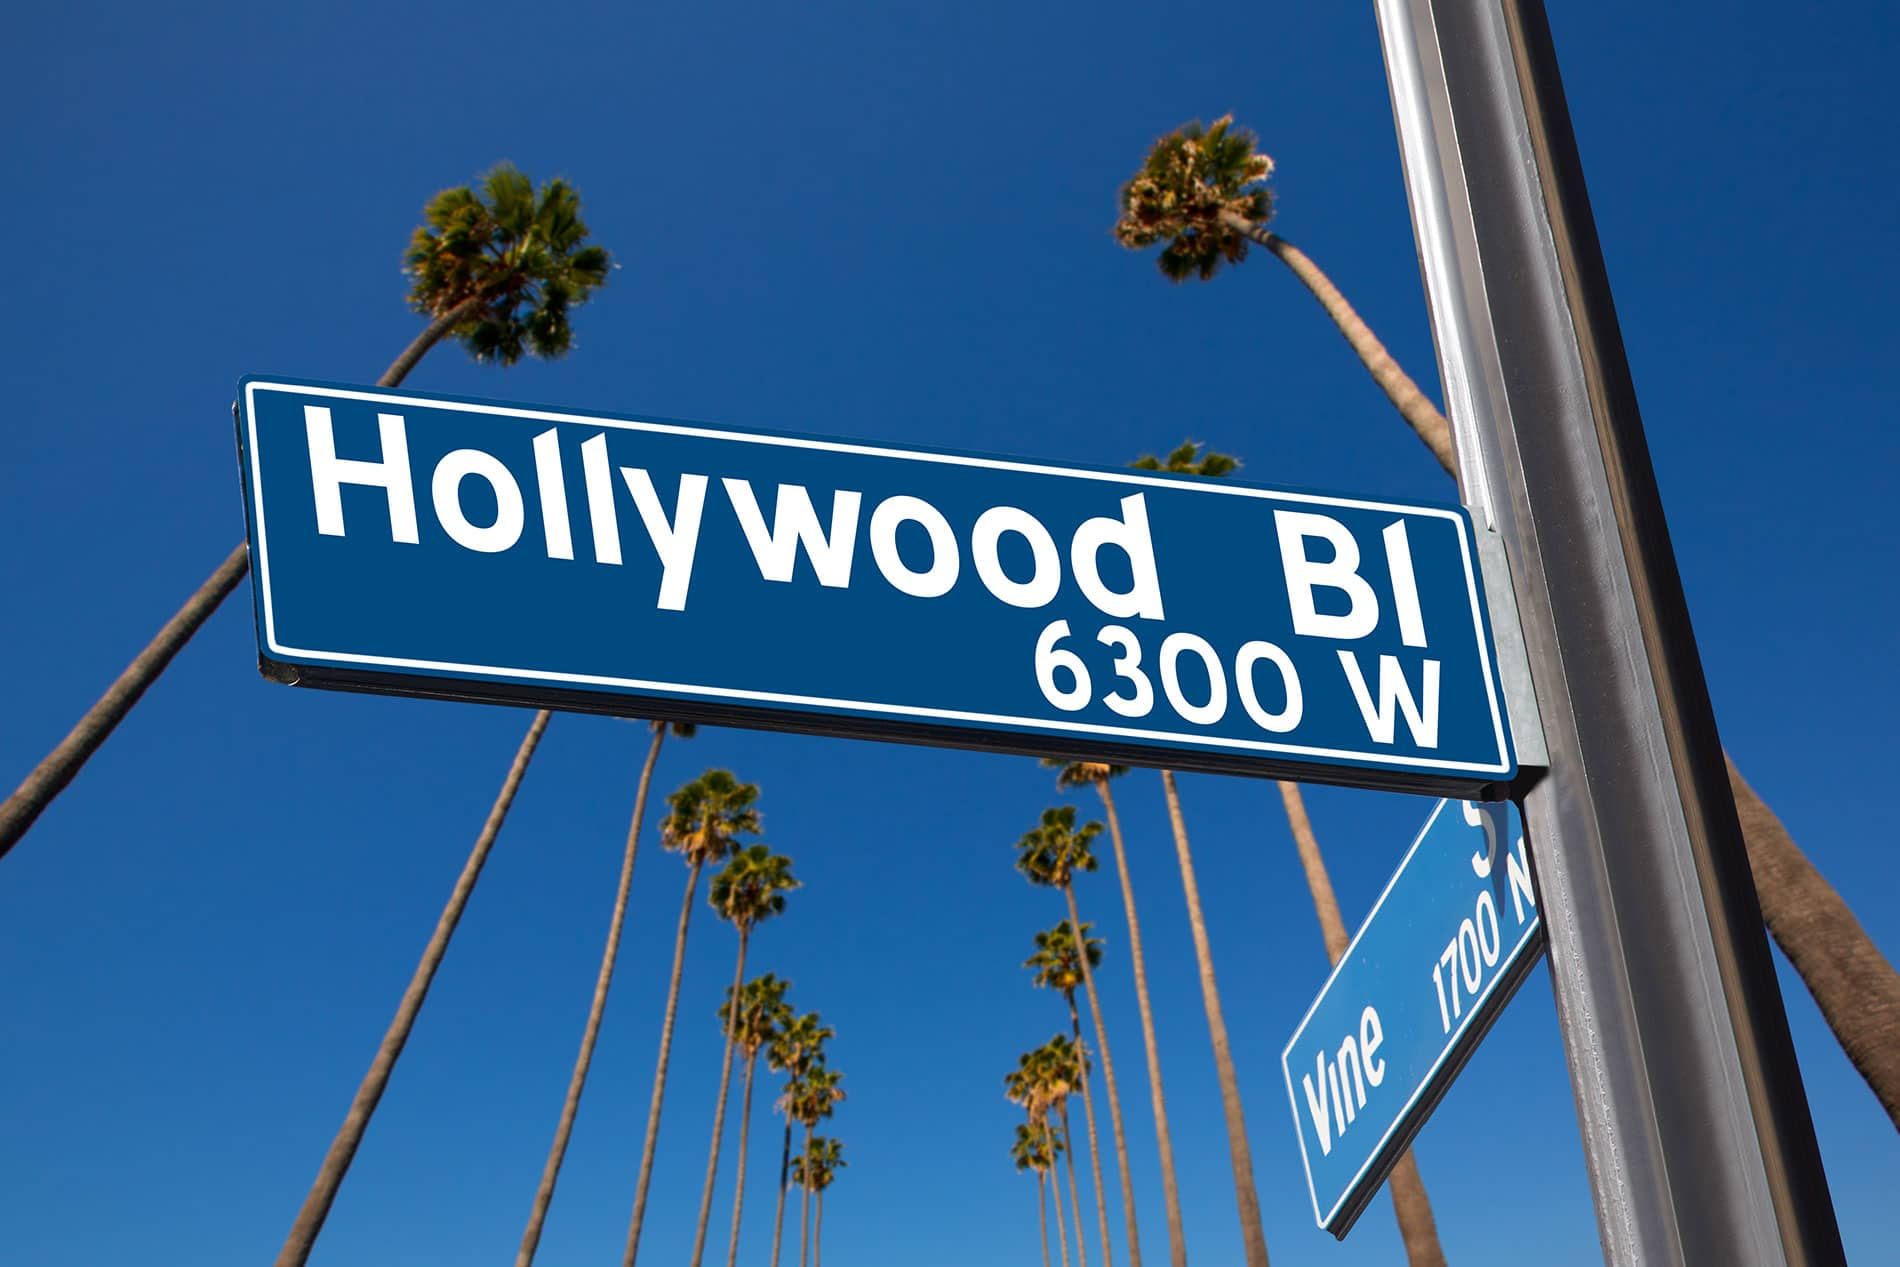 Things to do in hollywood boulevard